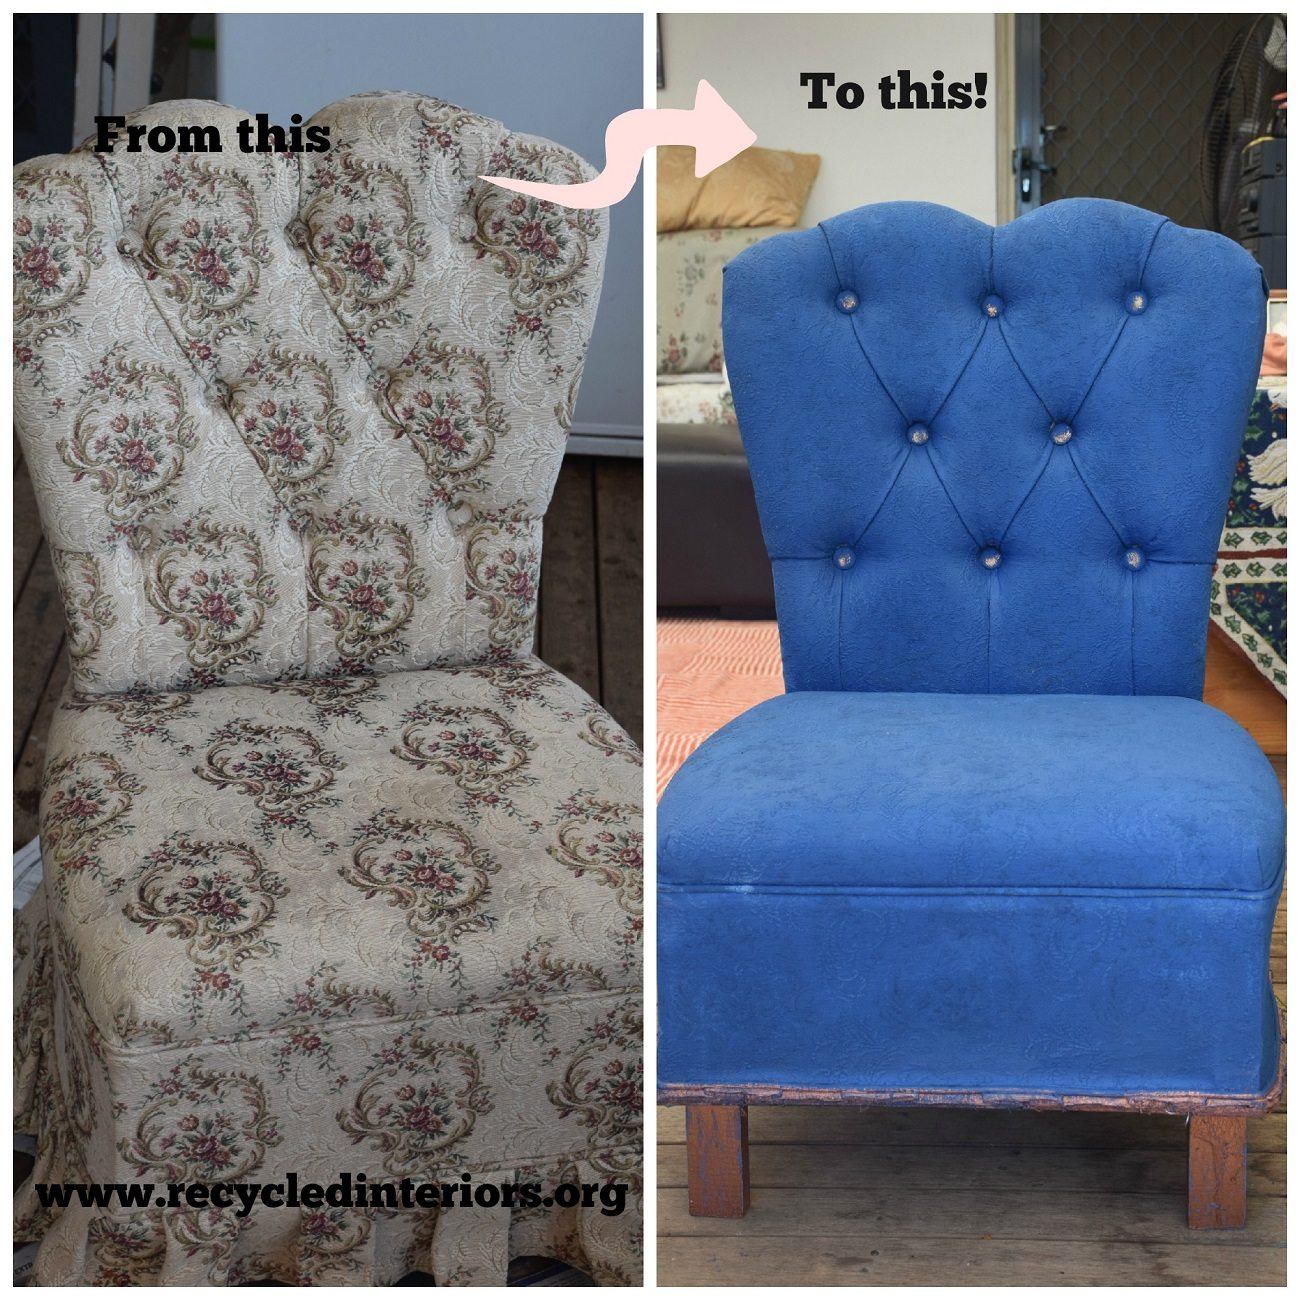 how to take an old upholstered chair and paint it with chalk paint! A simple process of paint, sand and wax - with no need to change the fabric! Step by Step tutorial